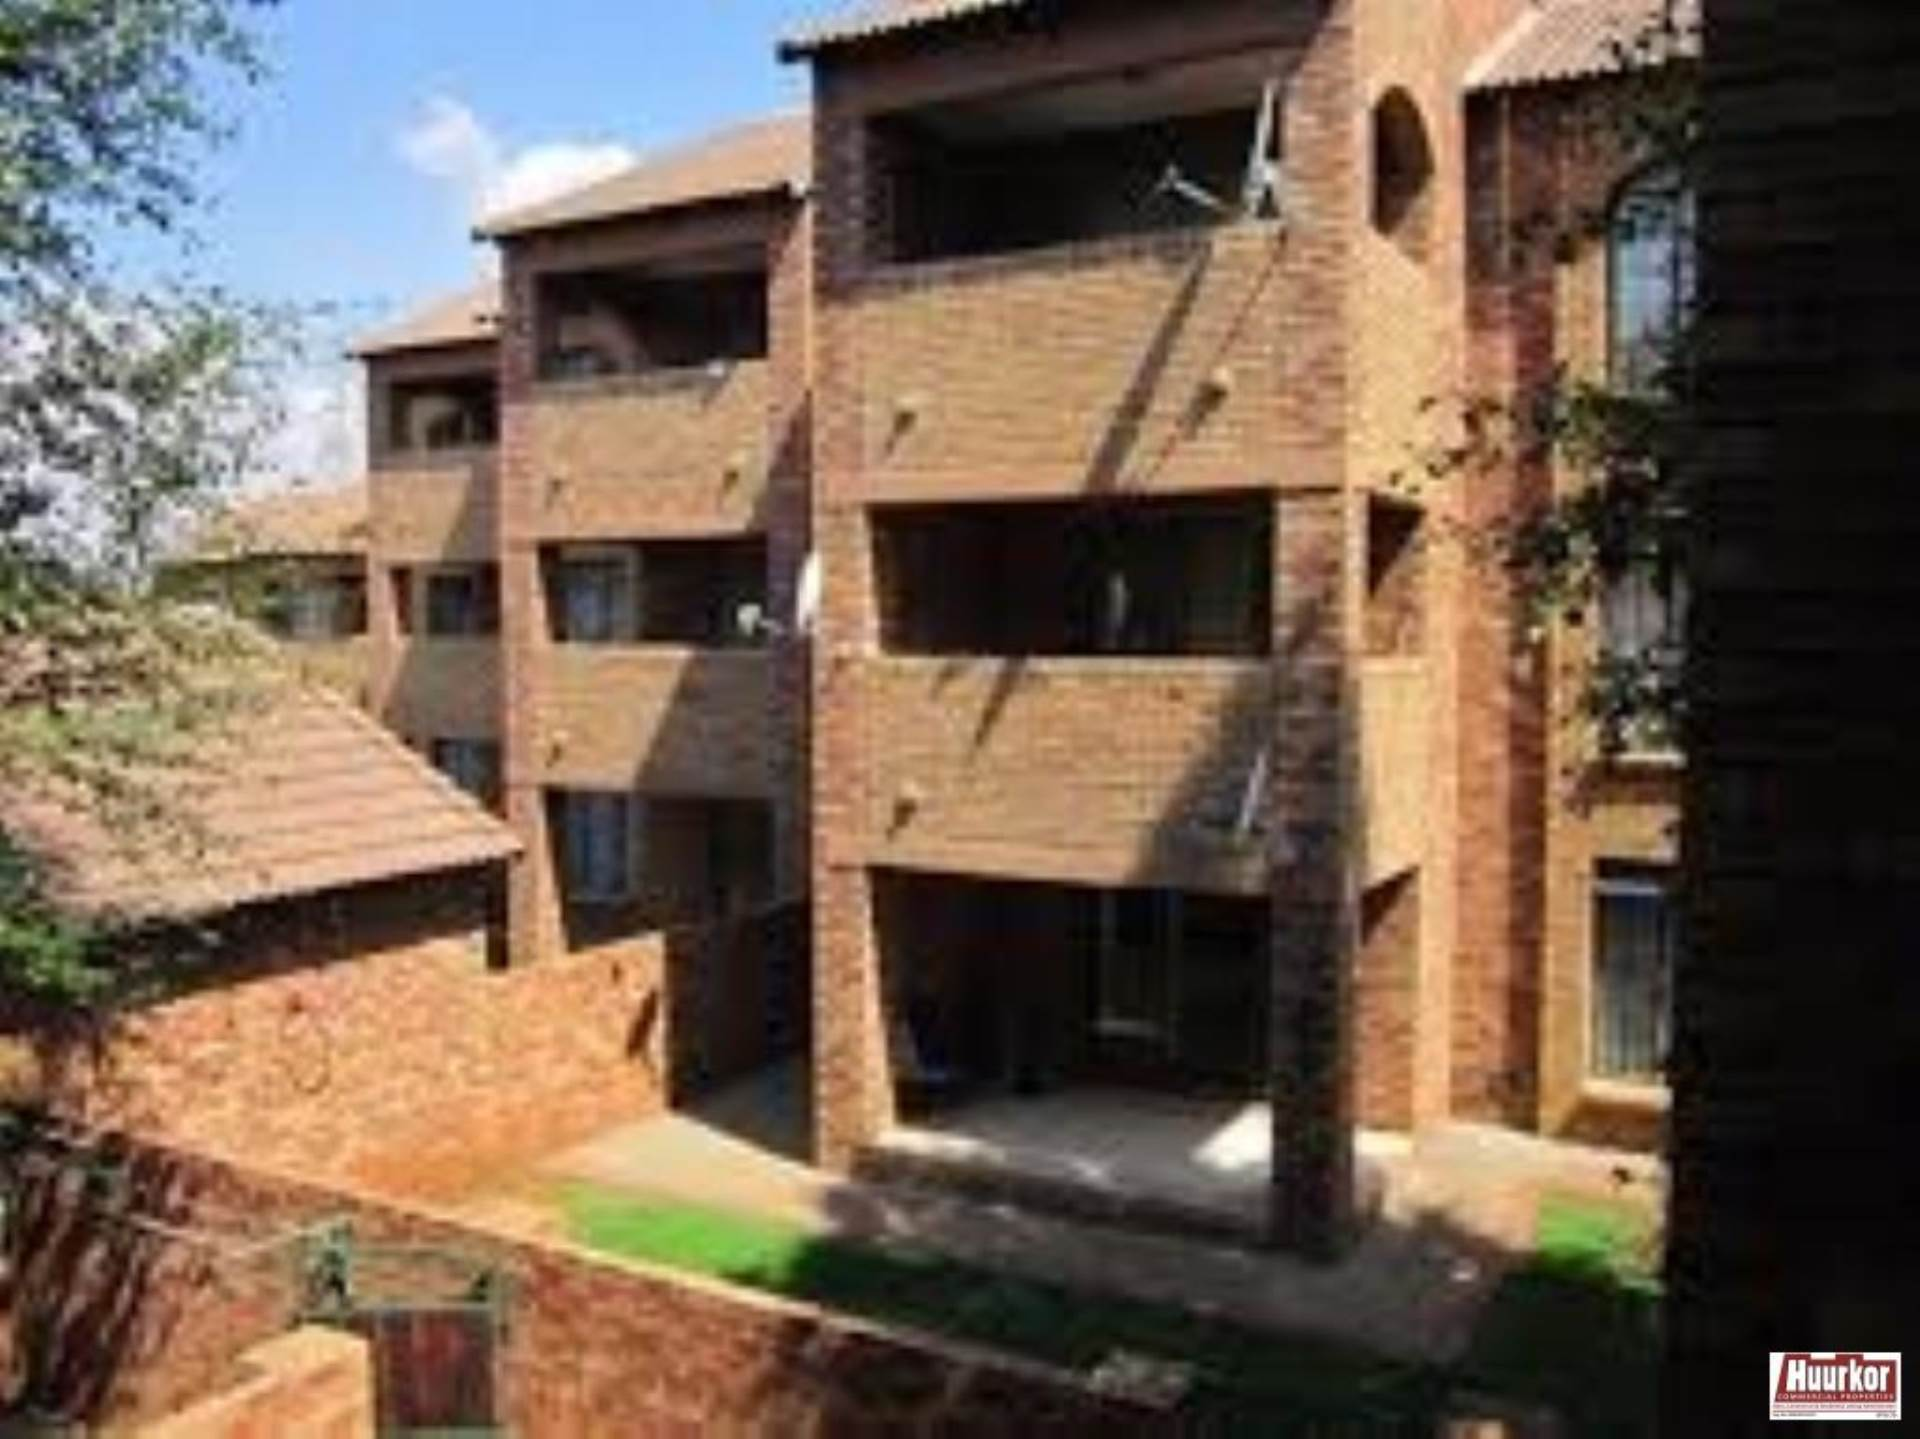 Apartment To Rent In Highveld Centurion Gauteng For R 7 070 Month